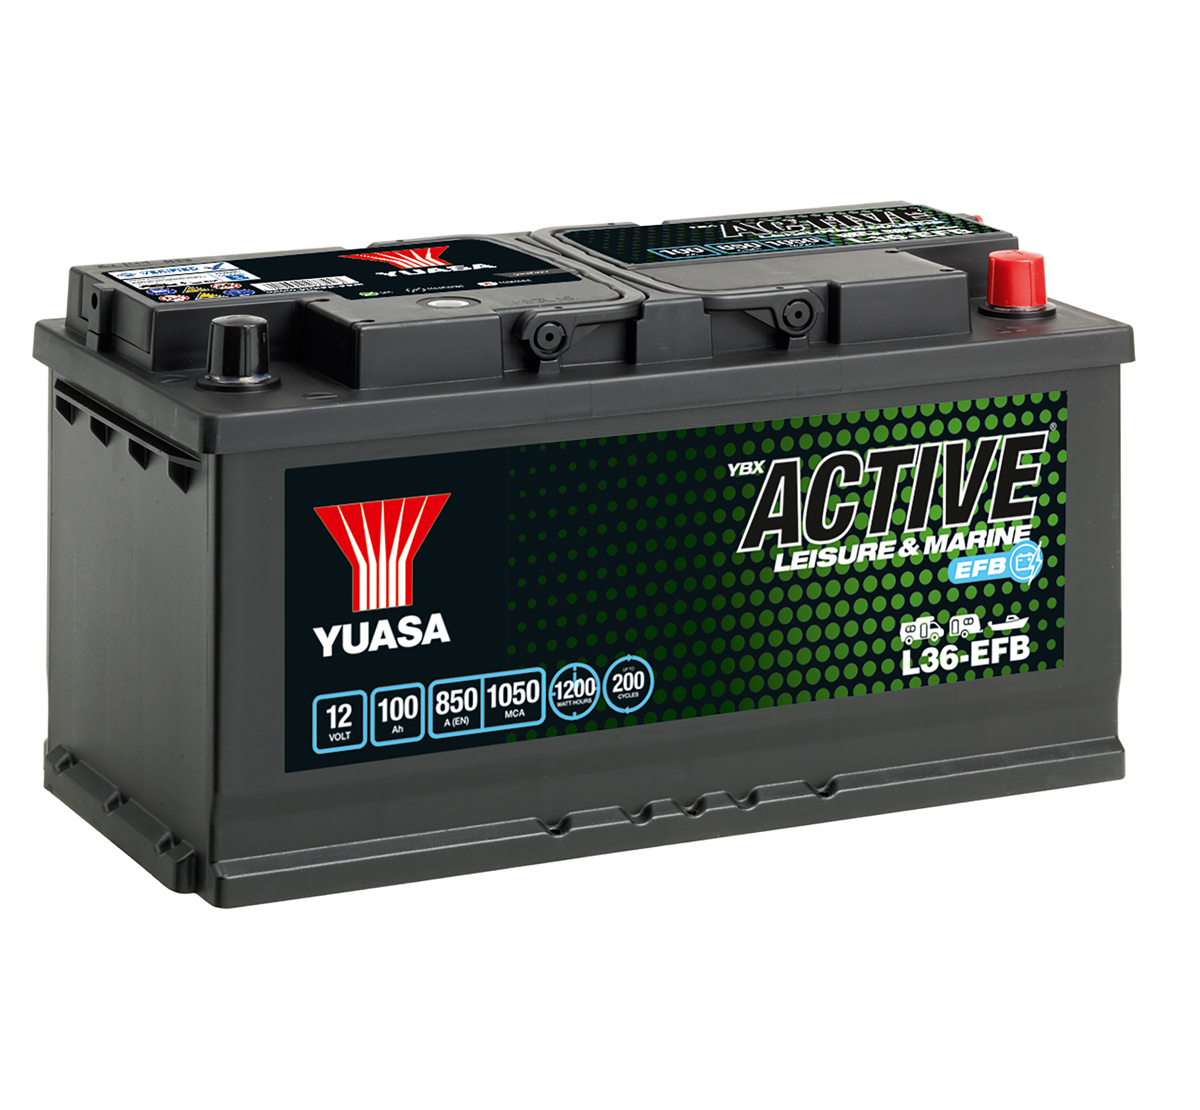 Yuasa YBX Active L36-EFB Leisure Battery